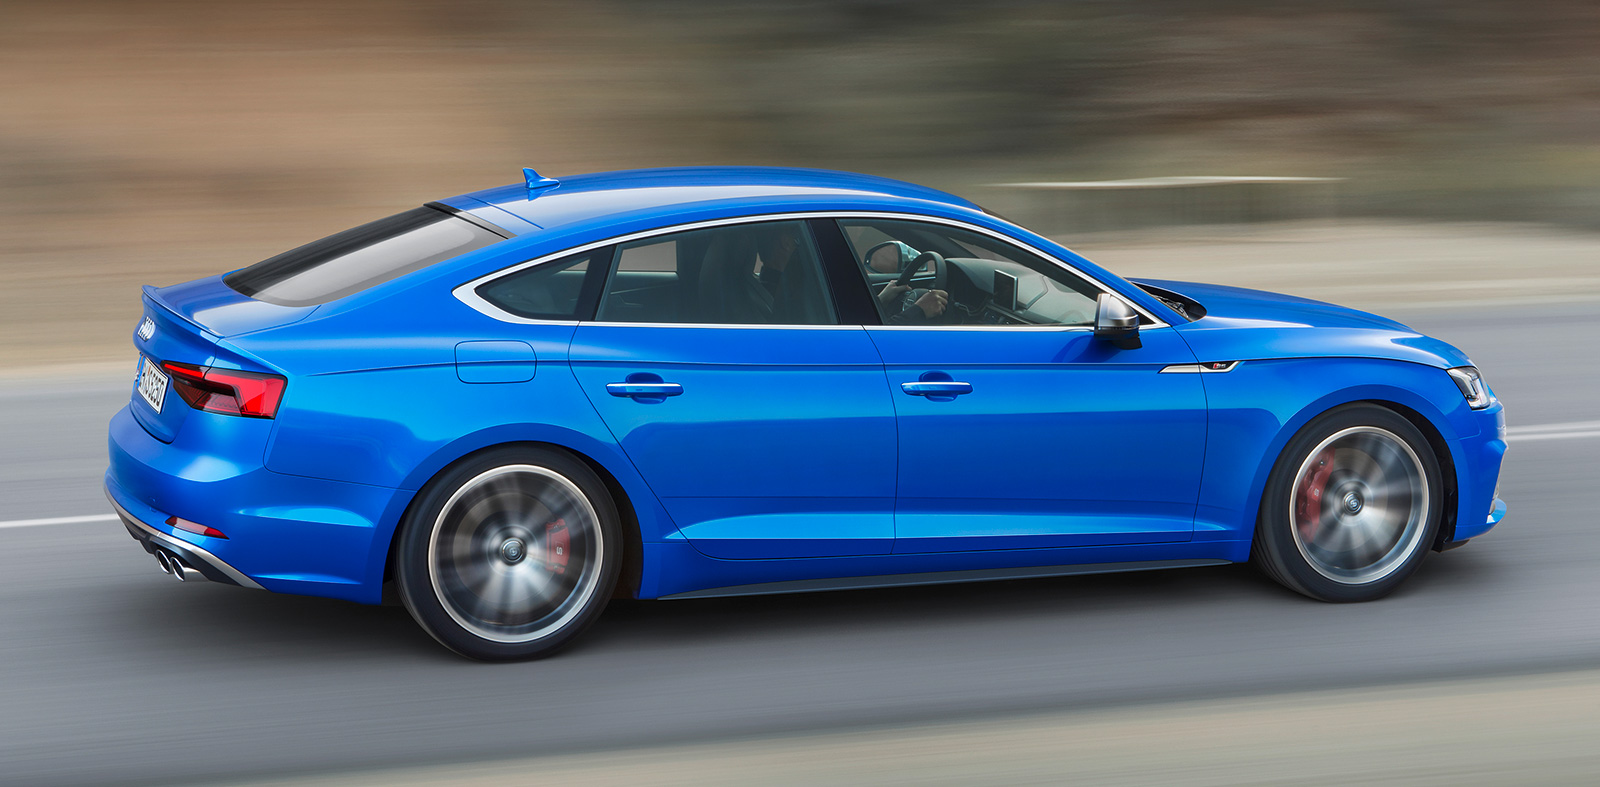 2017 Audi A5 And S5 Sportback Revealed Paris Debut Image